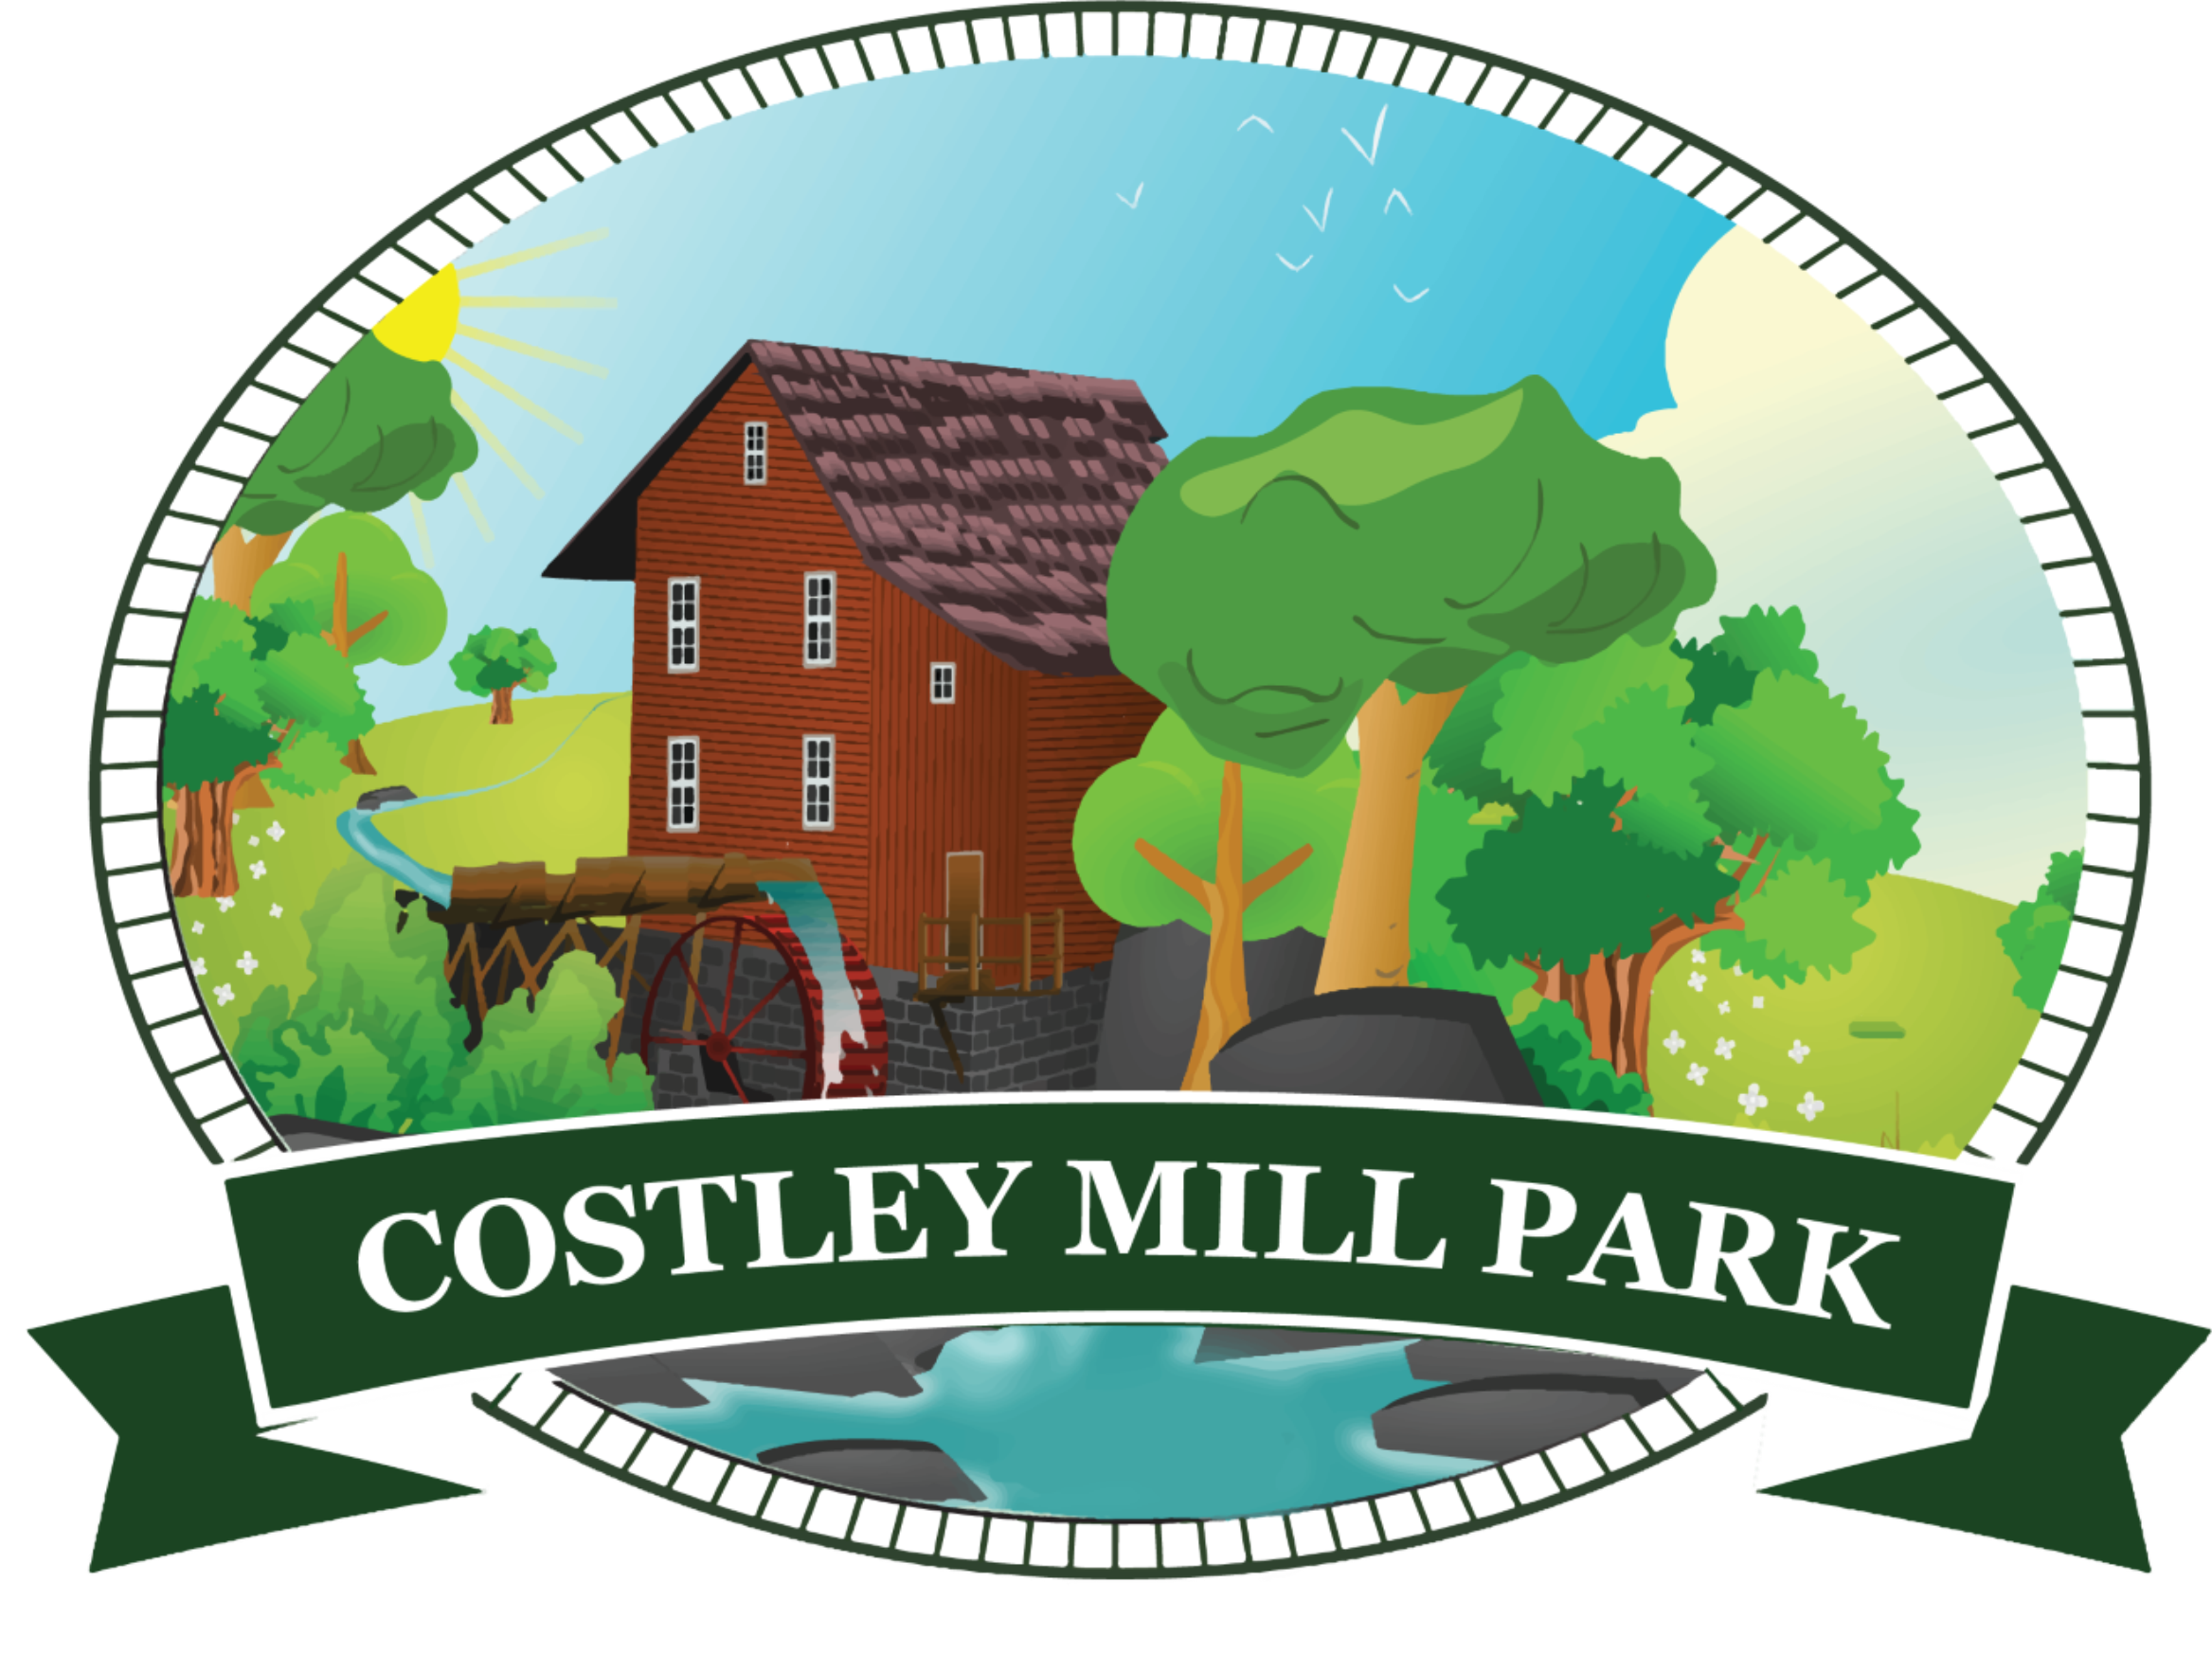 Costley Mill Park